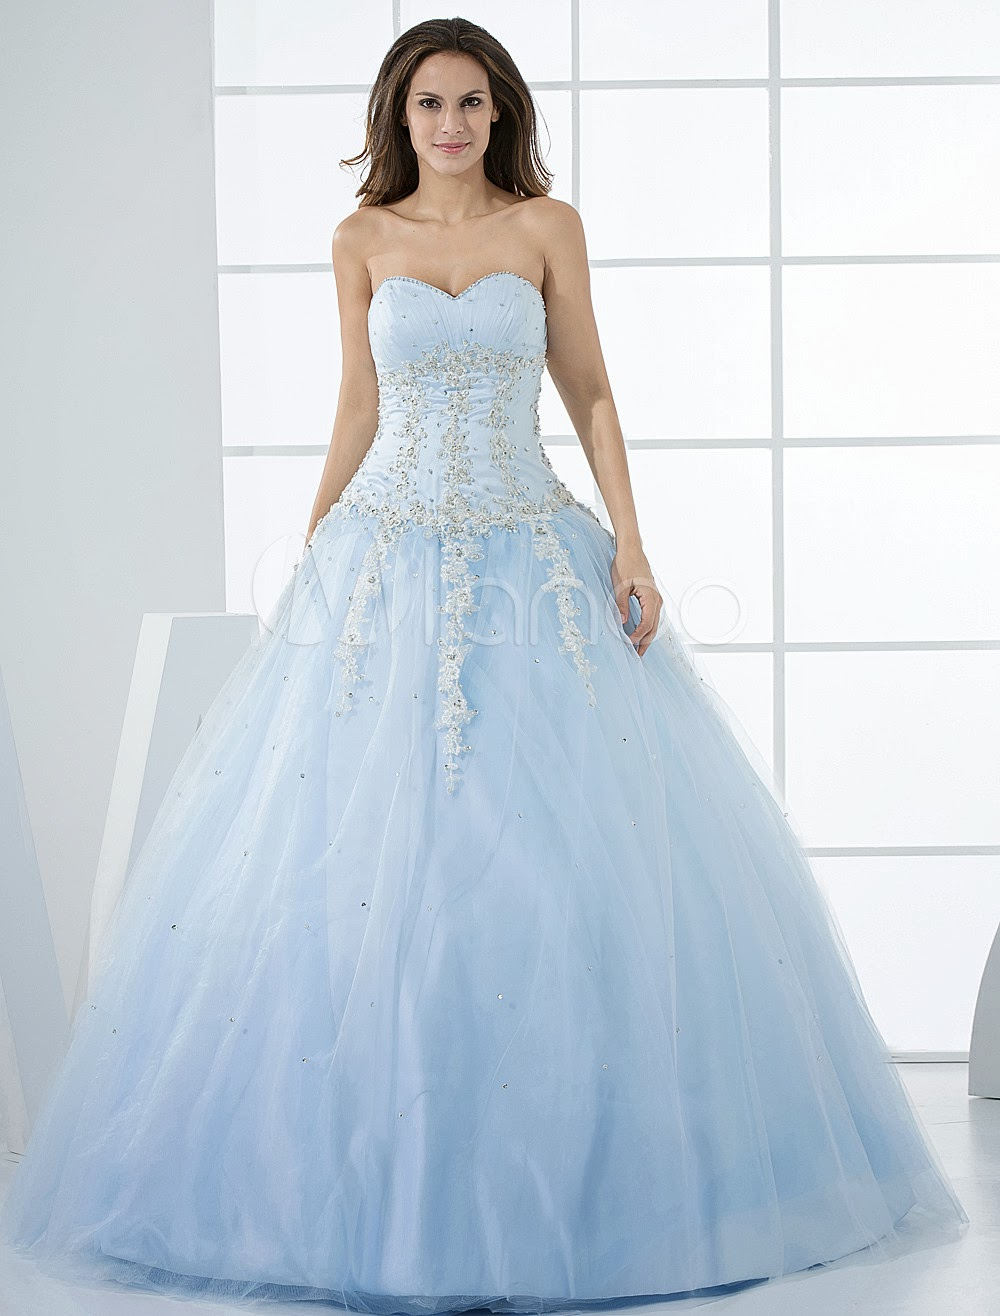 China Wholesale Dresses - Grace Light Sky Blue Ball Gown Sweetheart Neck Quinceanera Dress